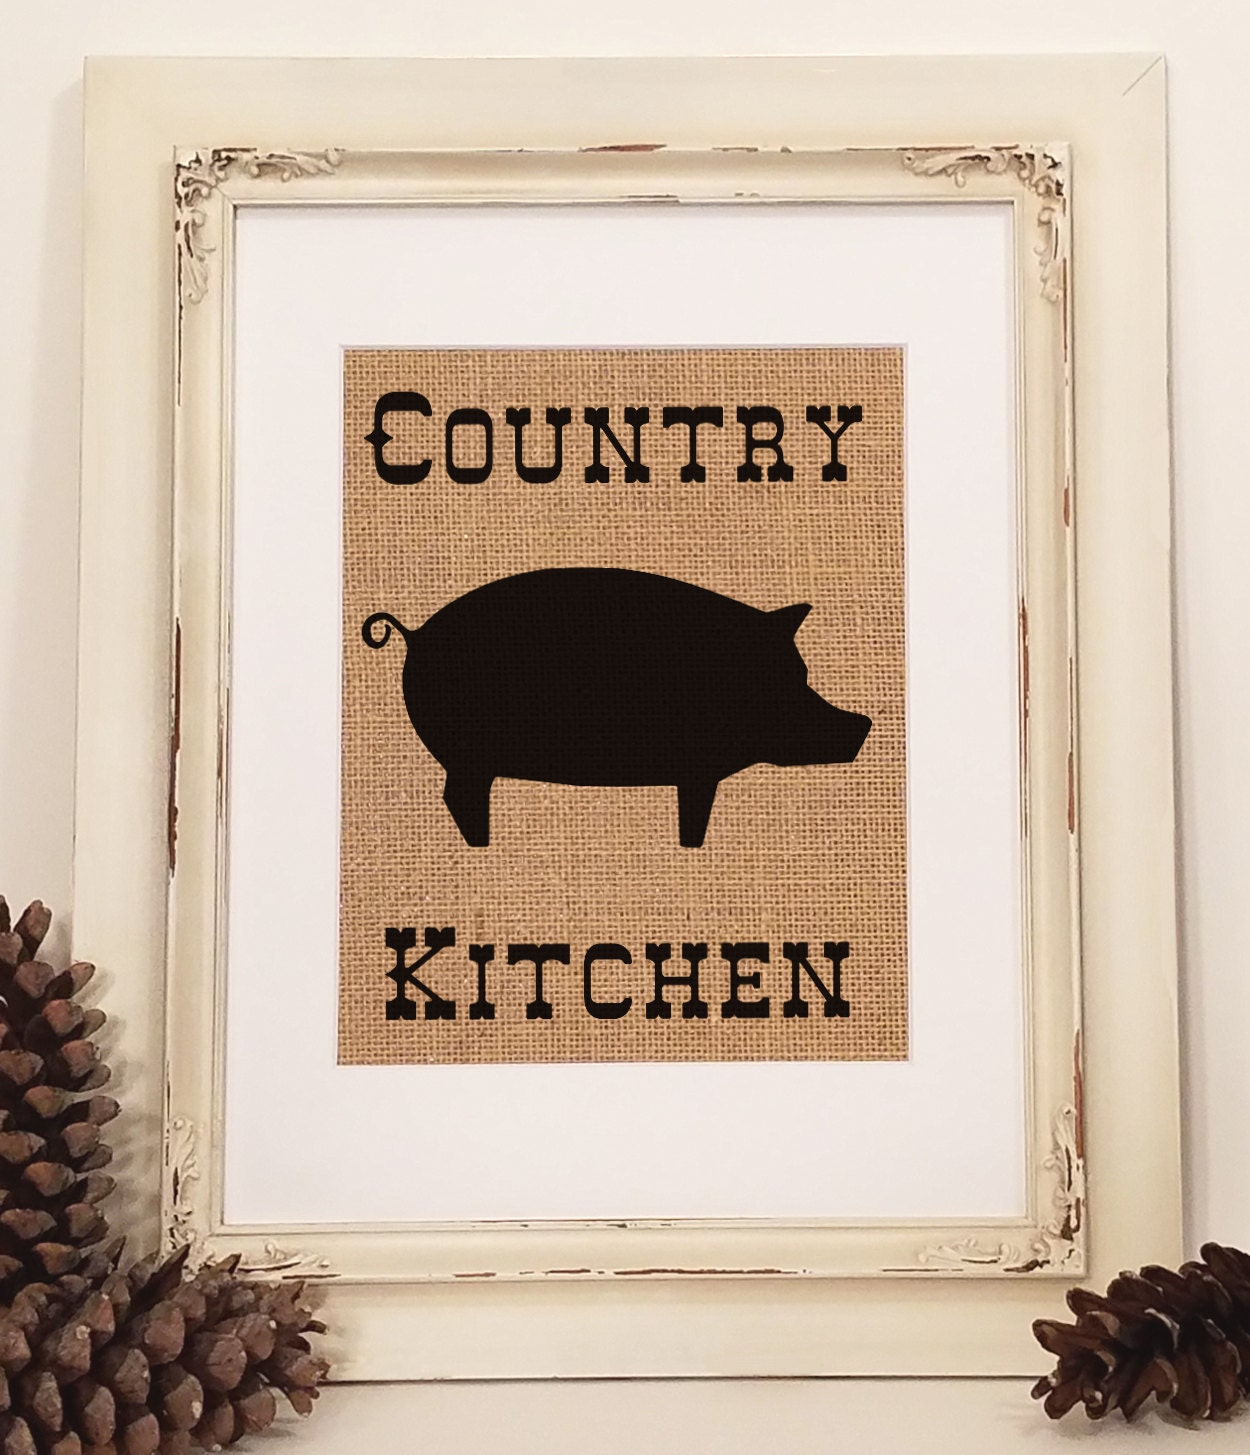 Country kitchen pig kitchen decor rustic kitchen by Pig kitchen decor